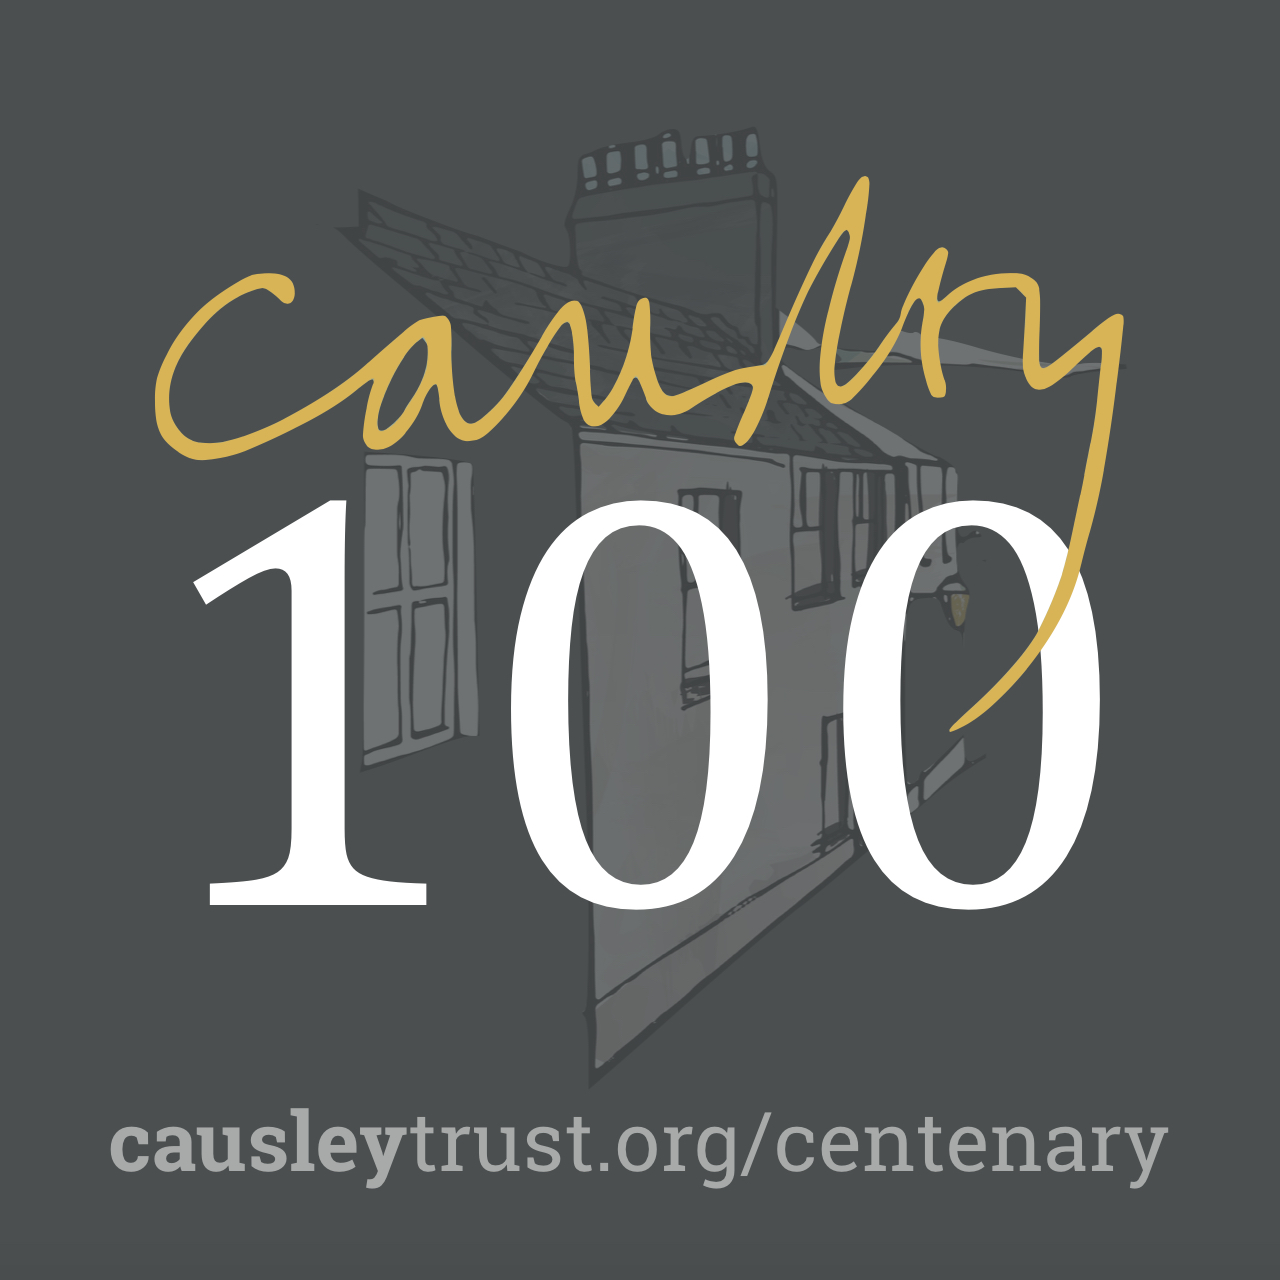 Biography - The Charles Causley Trust